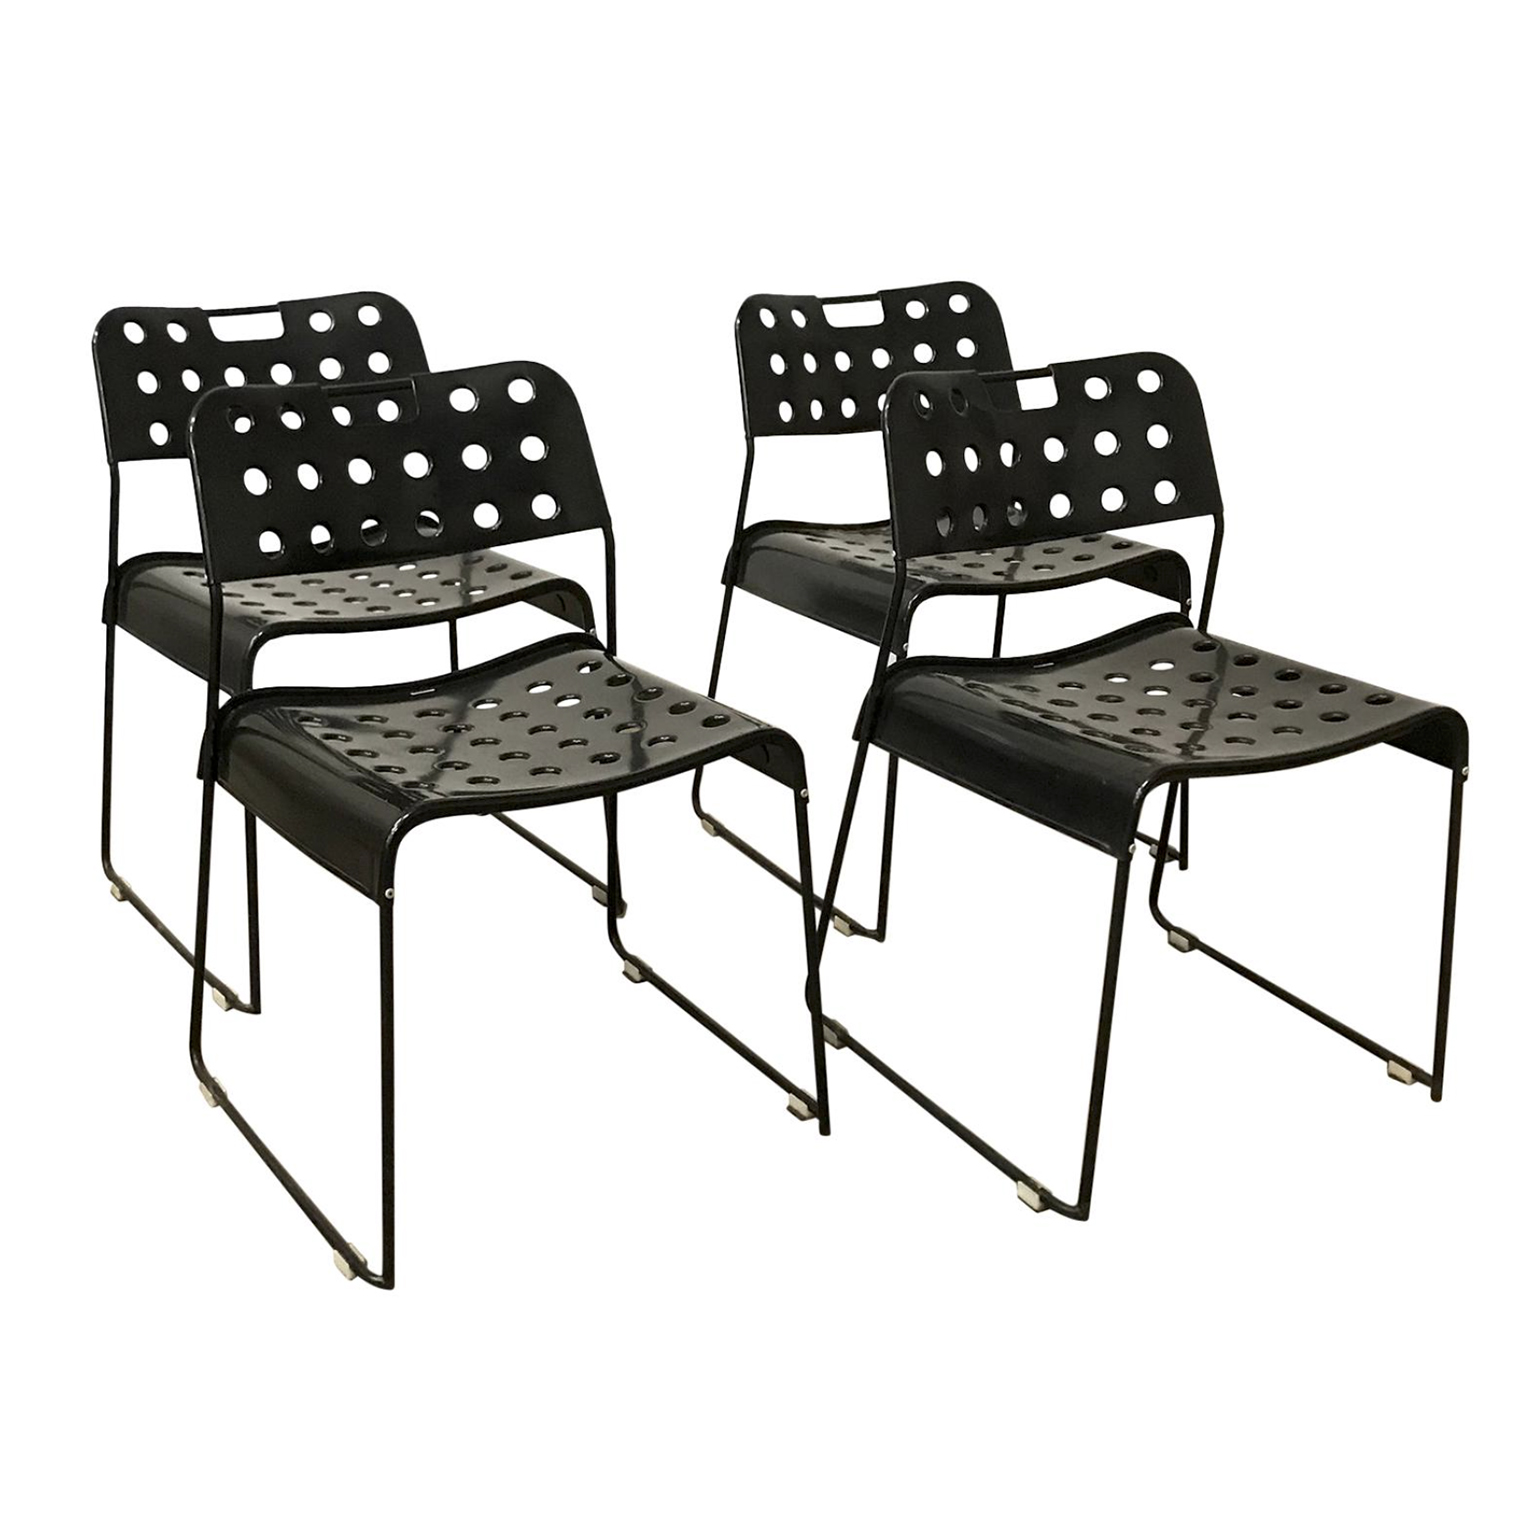 1971 Rodney Kinsman Set Of Rare All Black Incl Frame Omstak Stacking Chairs